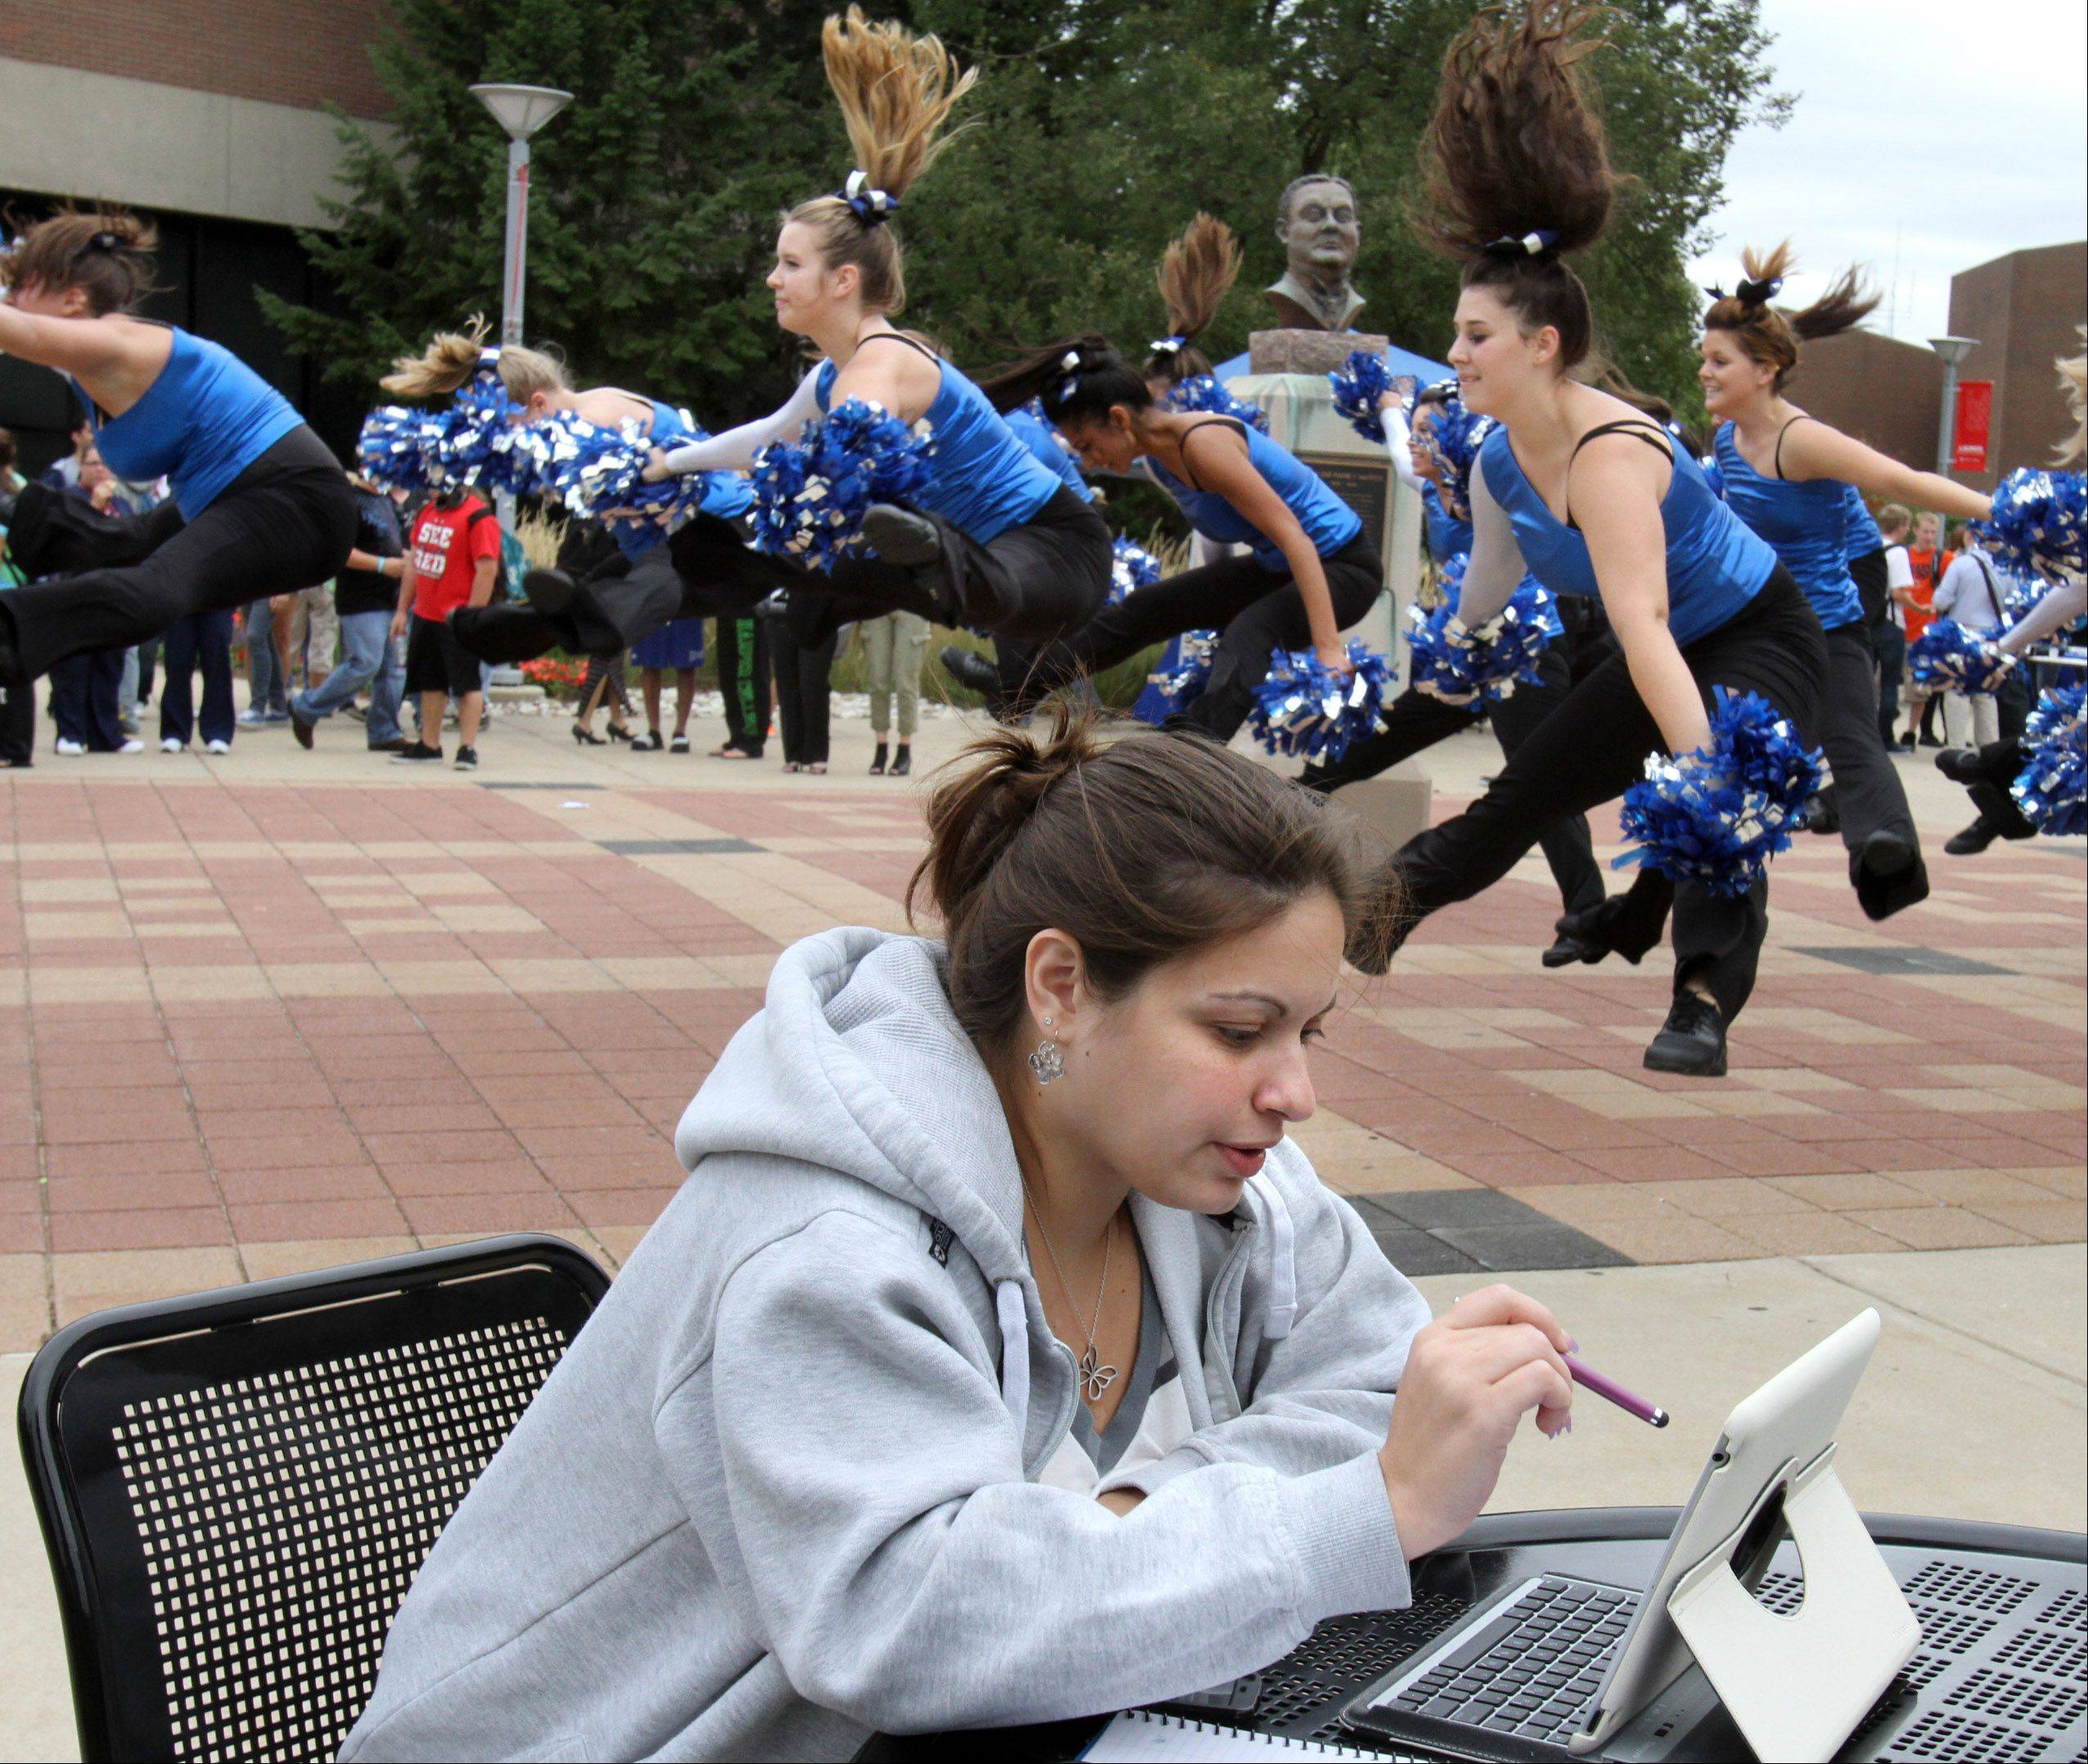 Jennifer Strange of Hoffman Estates studies math while the Harper College pomp and dance team preforms at the college's Hullabaloo celebration in Palatine on Thursday, September 13.